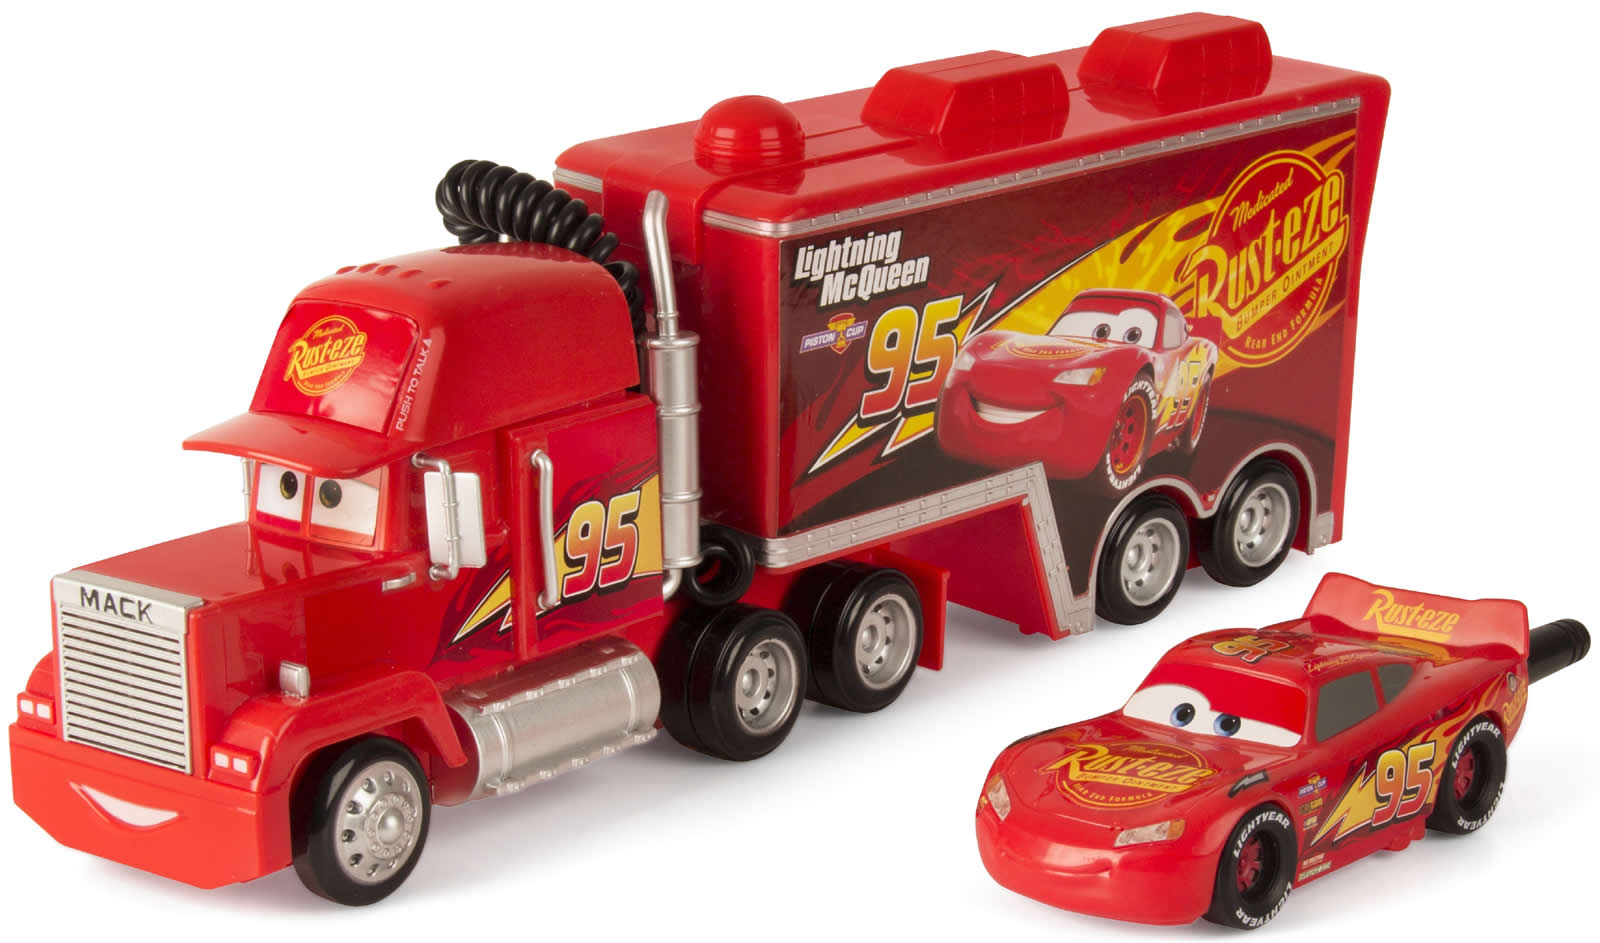 Disney Cars 3 Mack Truck Funkstation Walkie-Talkie +3J | eBay